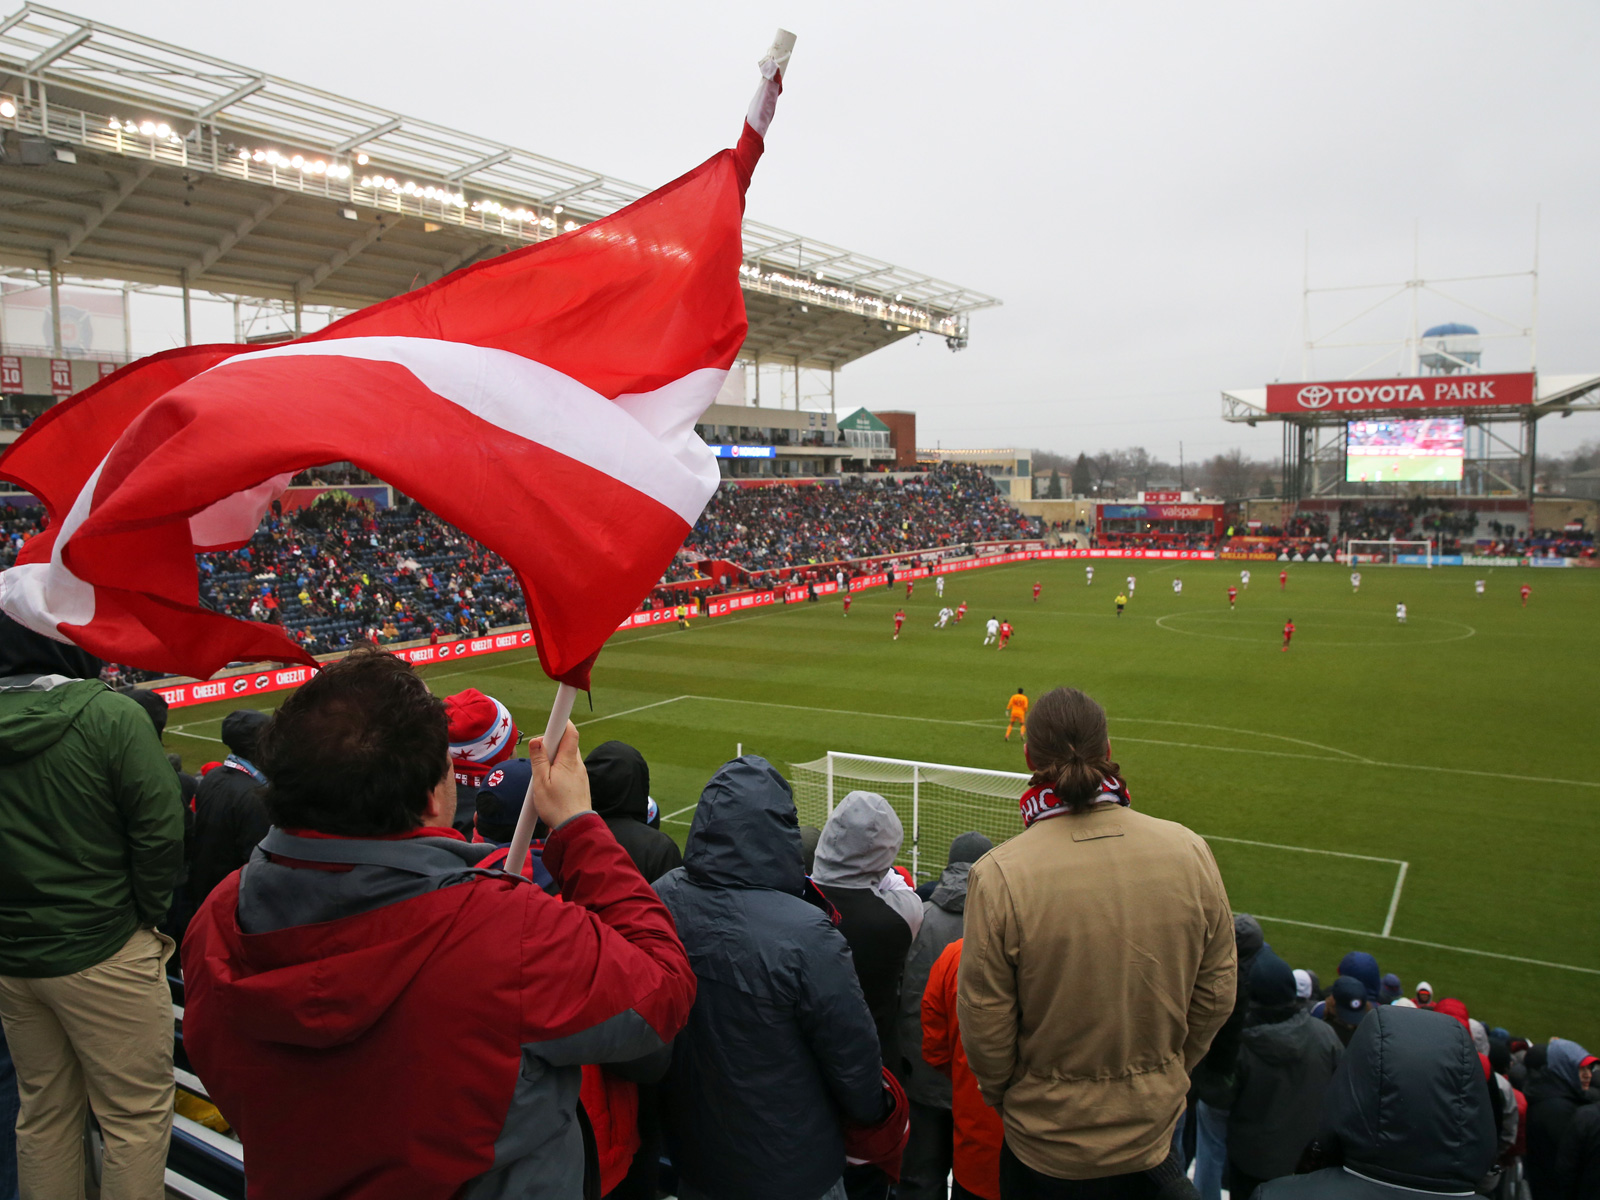 Toyota Park may not be the Chicago Fire's home for much longer